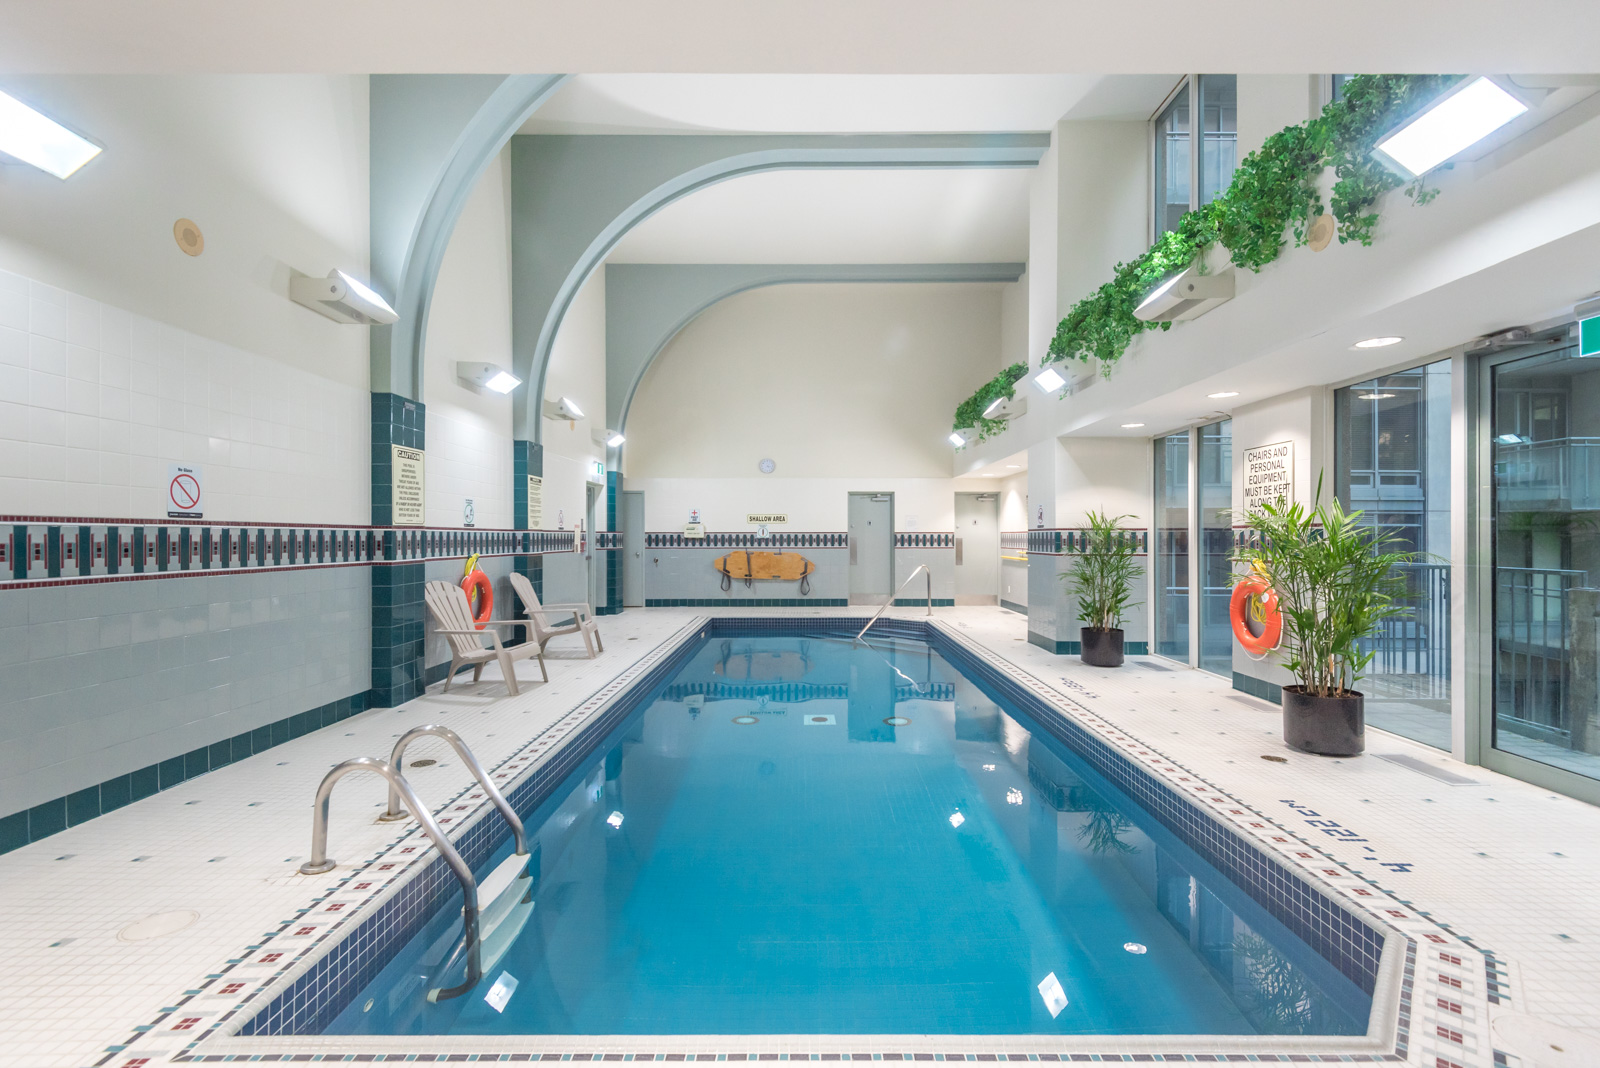 Indoor swimming pool with clear blue water and potted plants at The Metropole.